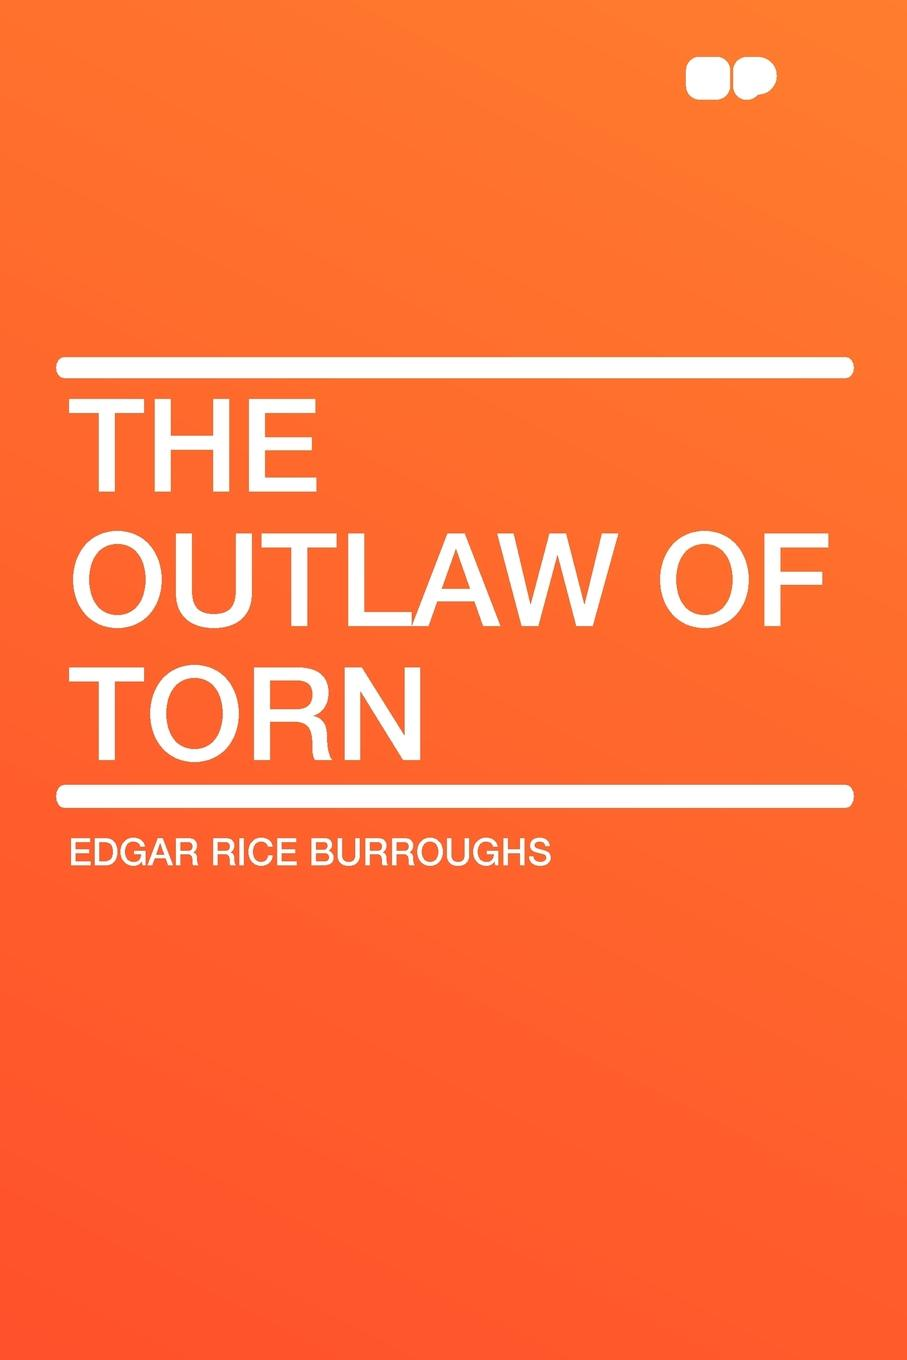 Edgar Rice Burroughs The Outlaw of Torn outlaw country